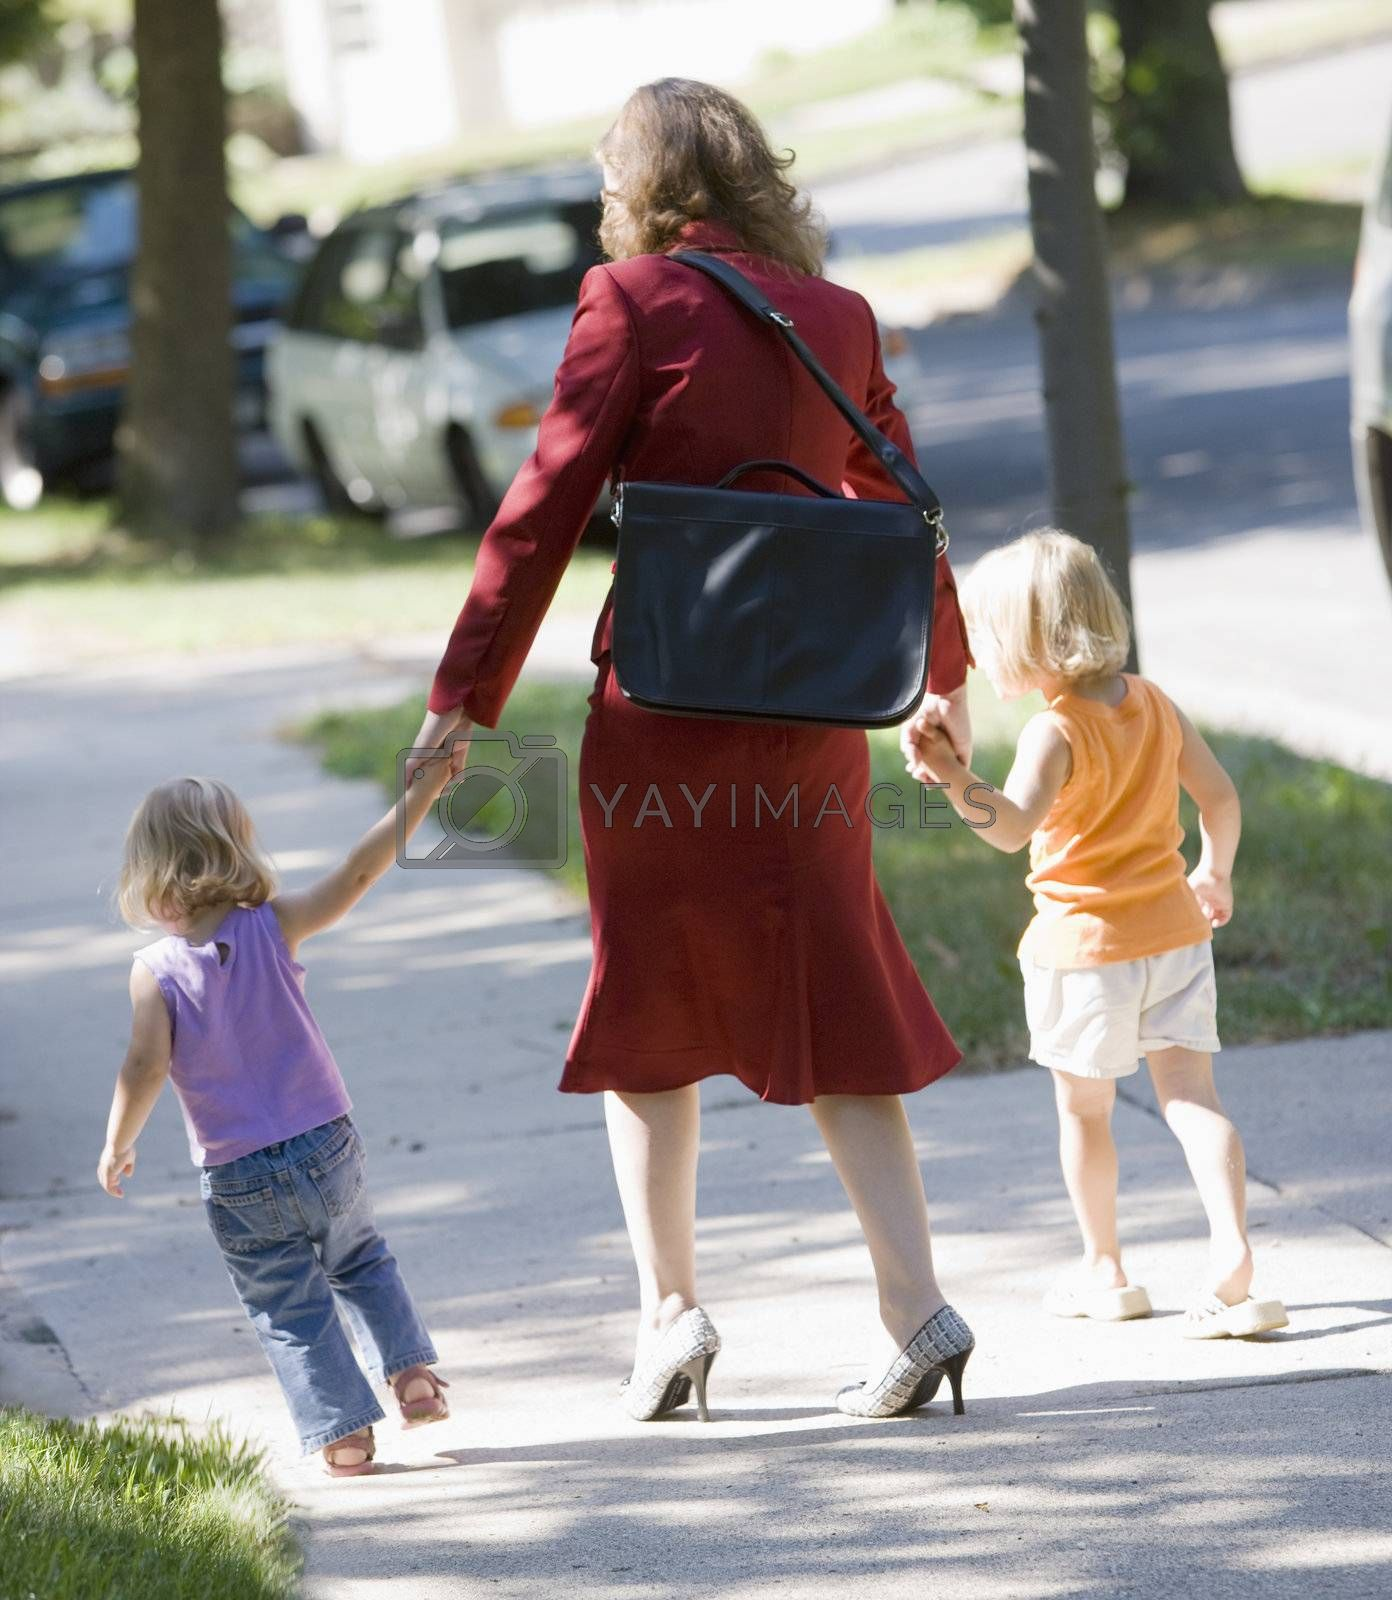 Professional woman walking her children to school or daycare